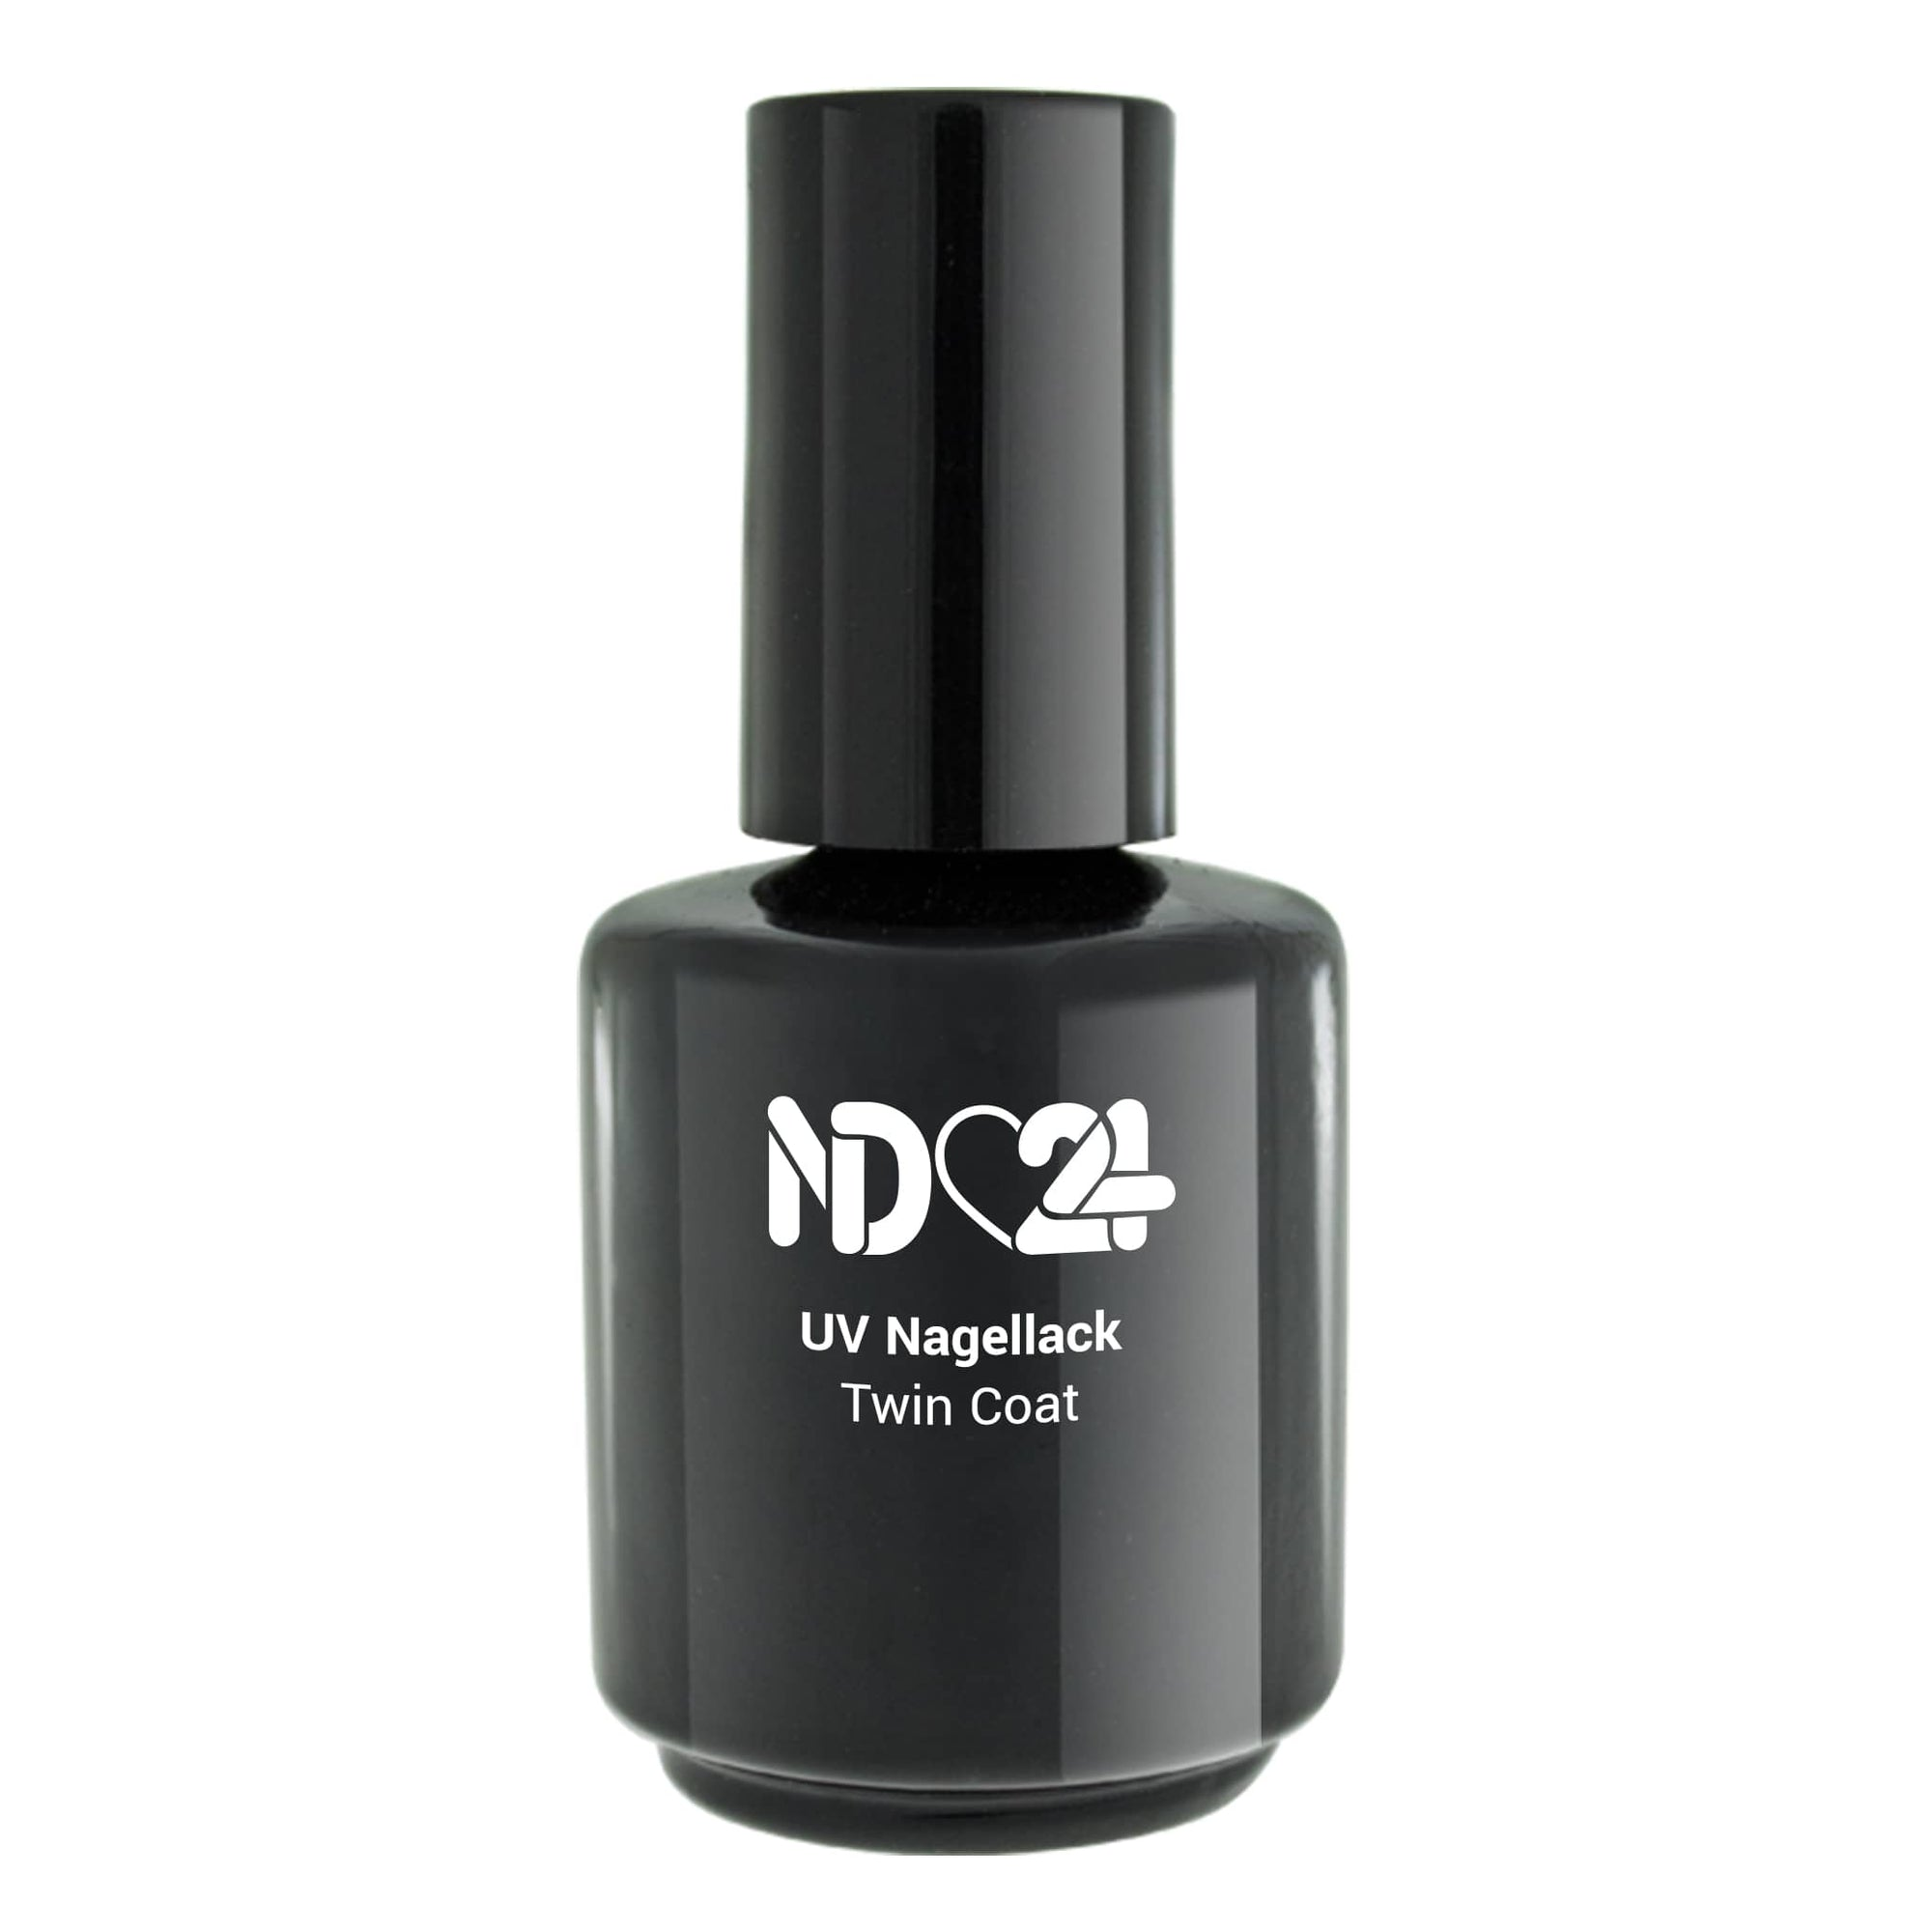 UV Nagellack Twin Coat